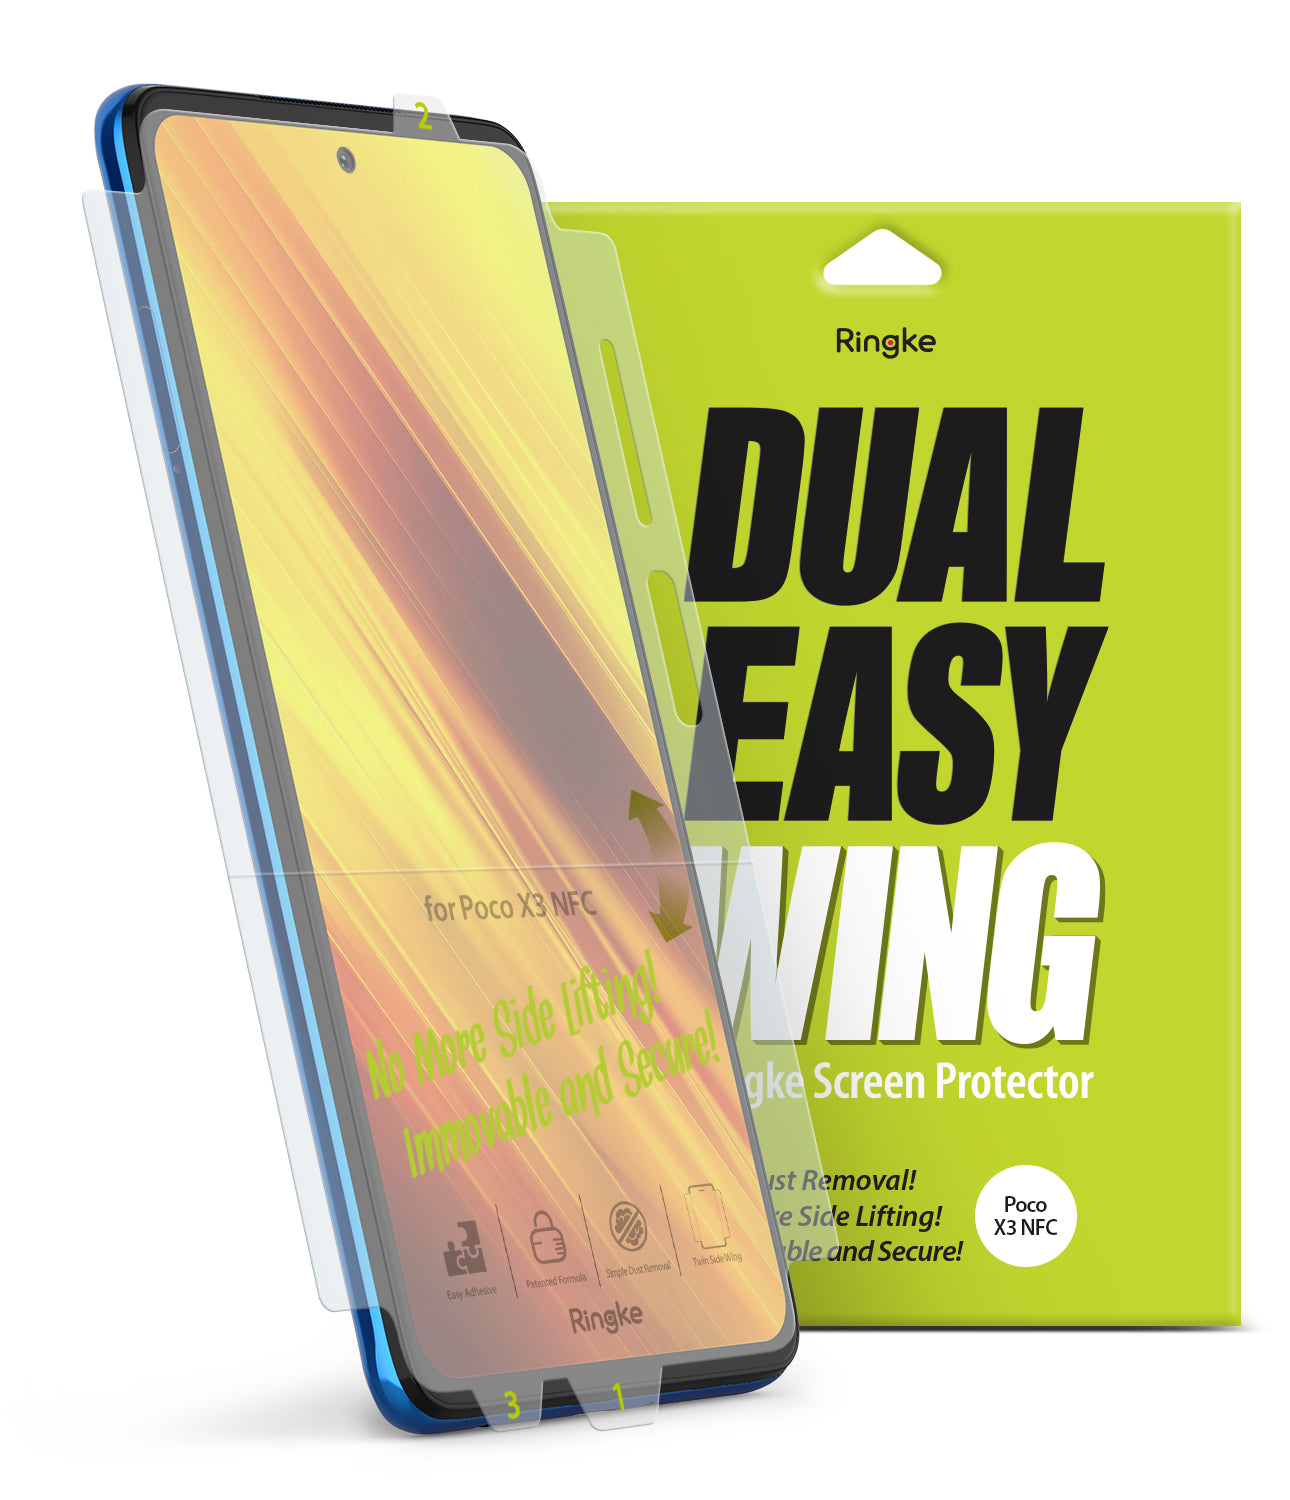 ringke dual easy film - poco x3 nfc screen protector